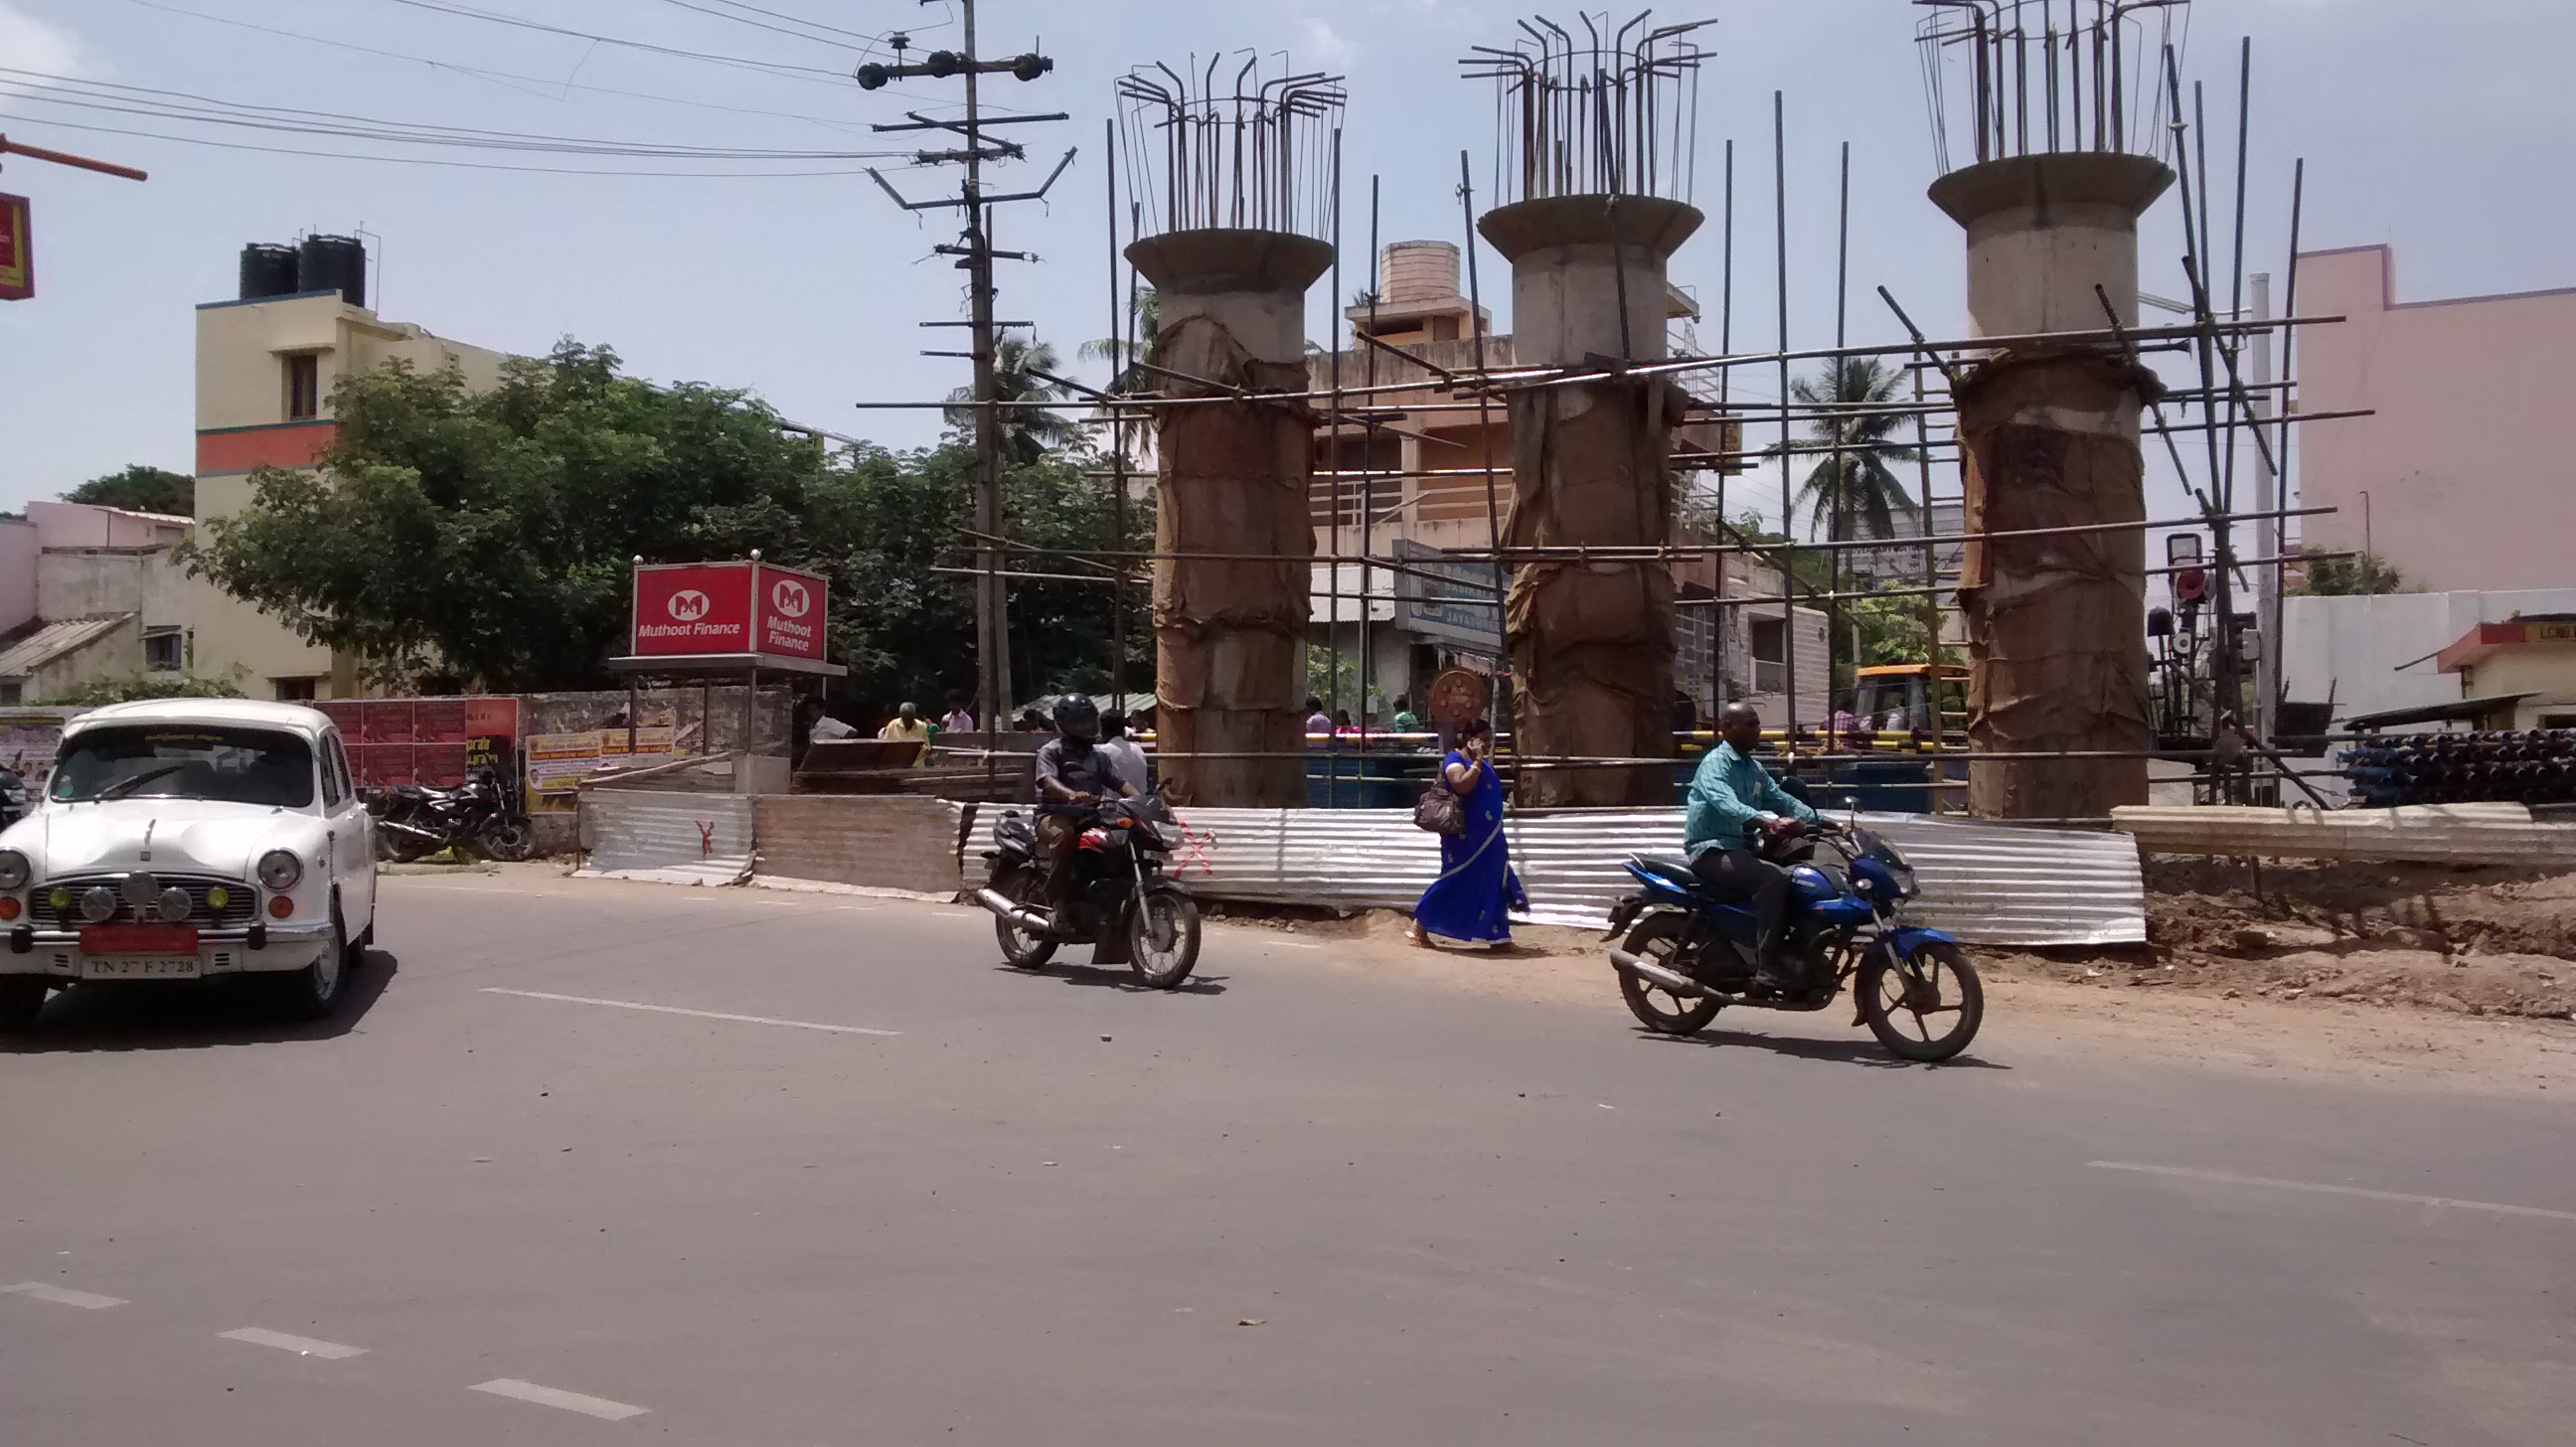 The site of protest. The pillars are on land belonging to the railways. Source: Author provided